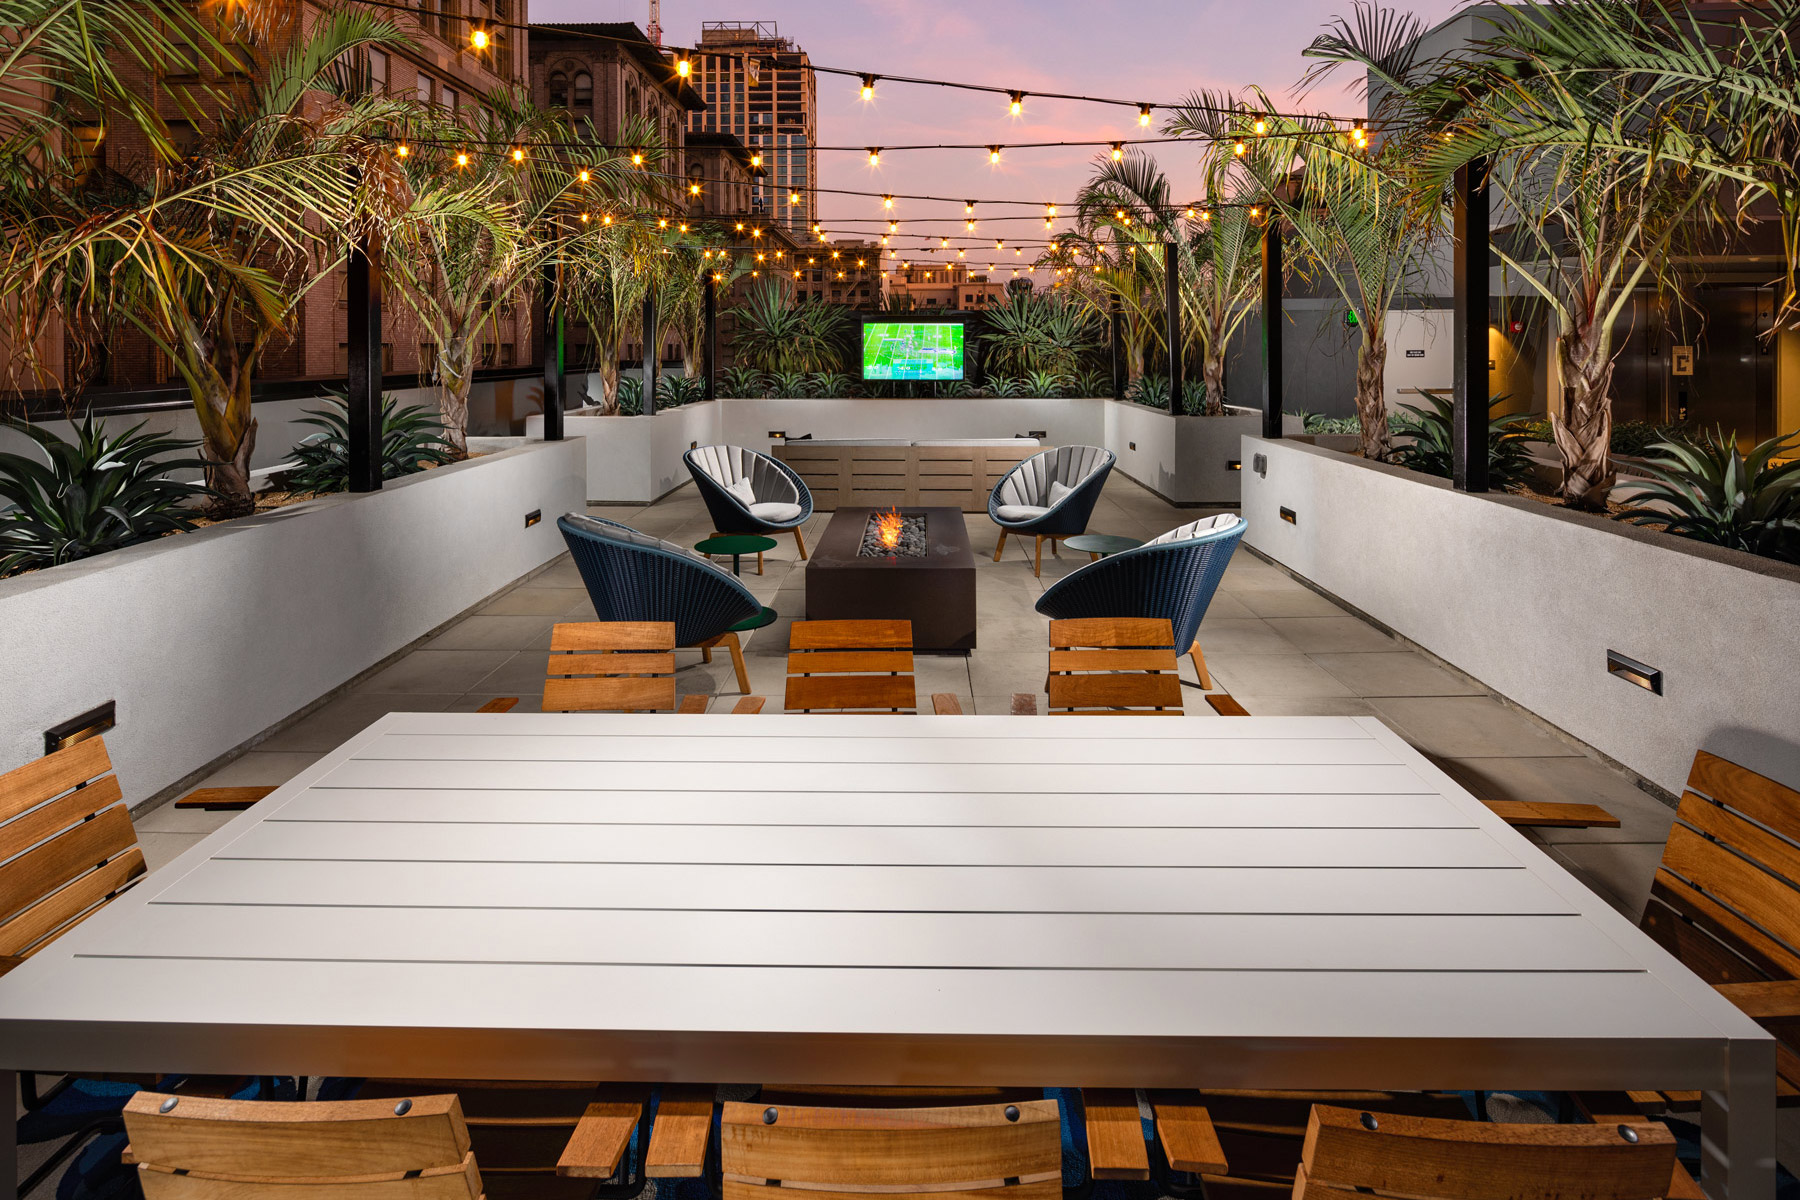 Trademark Apartments outdoor table with chairs